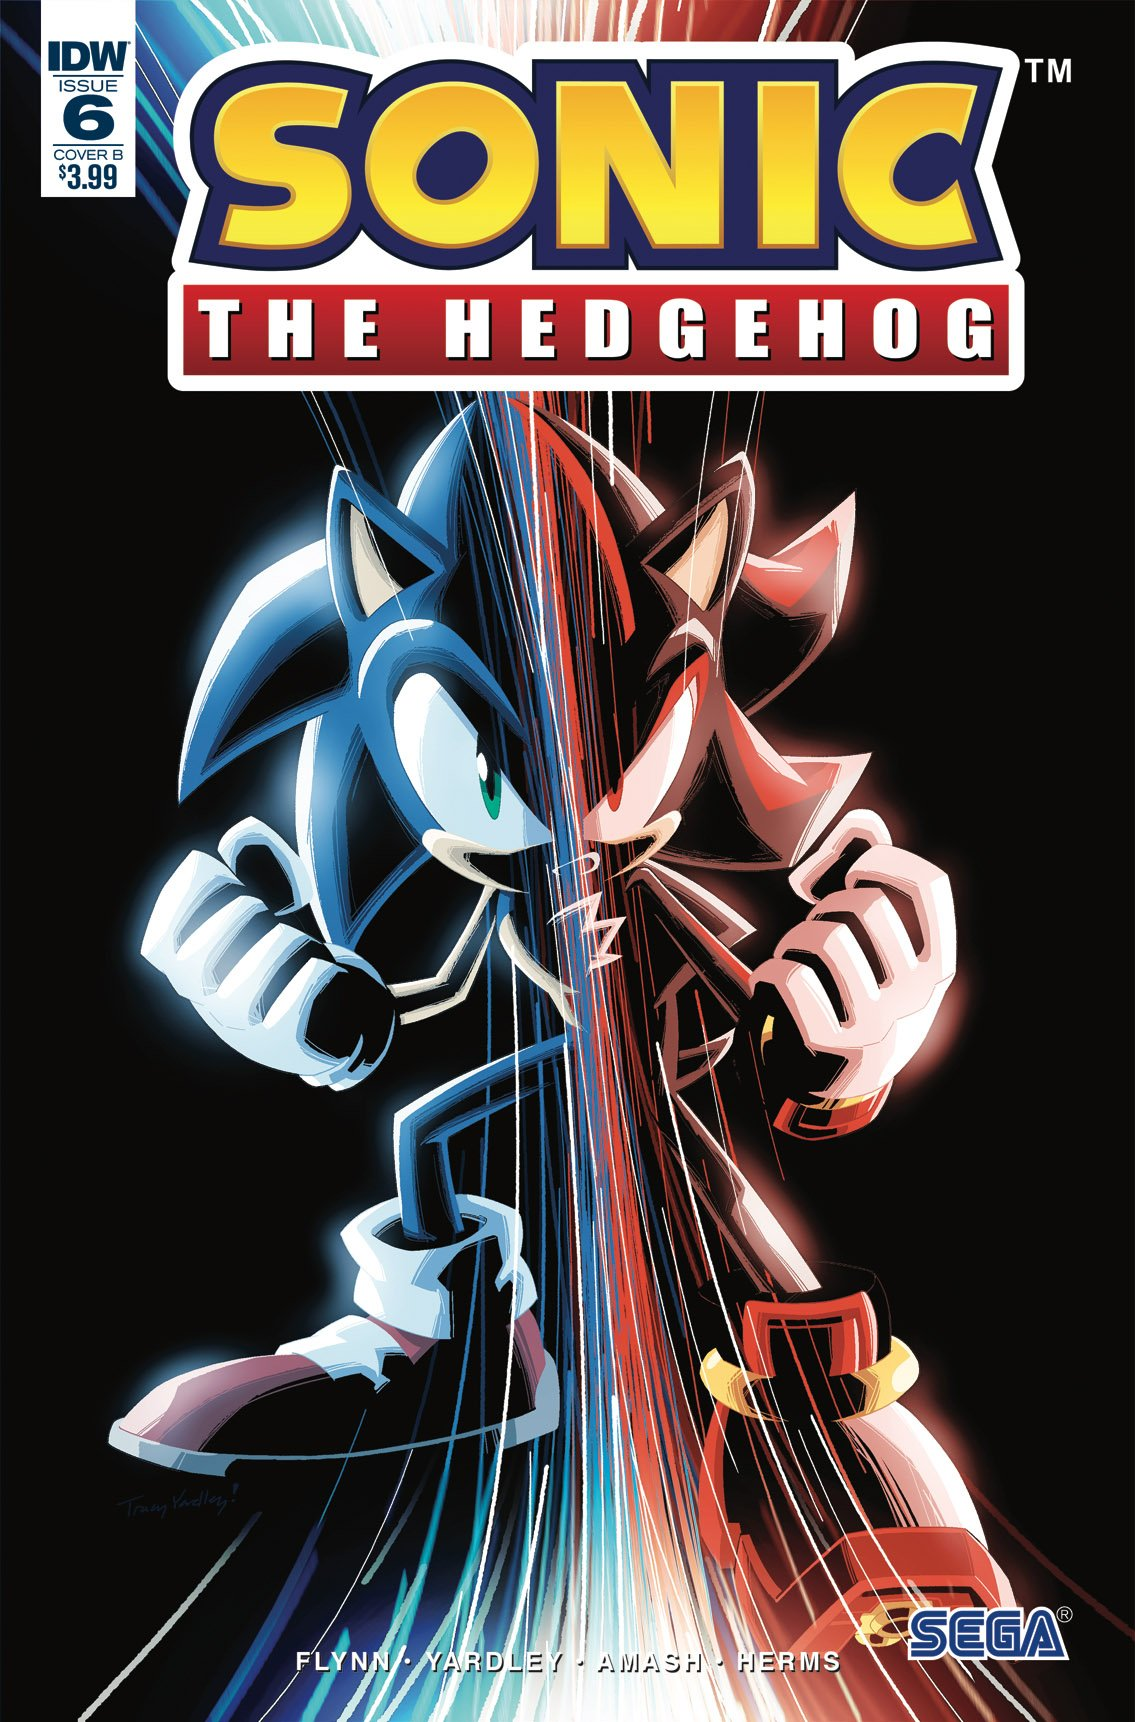 Sonic the Hedgehog 006 (June 2018) (cover b)